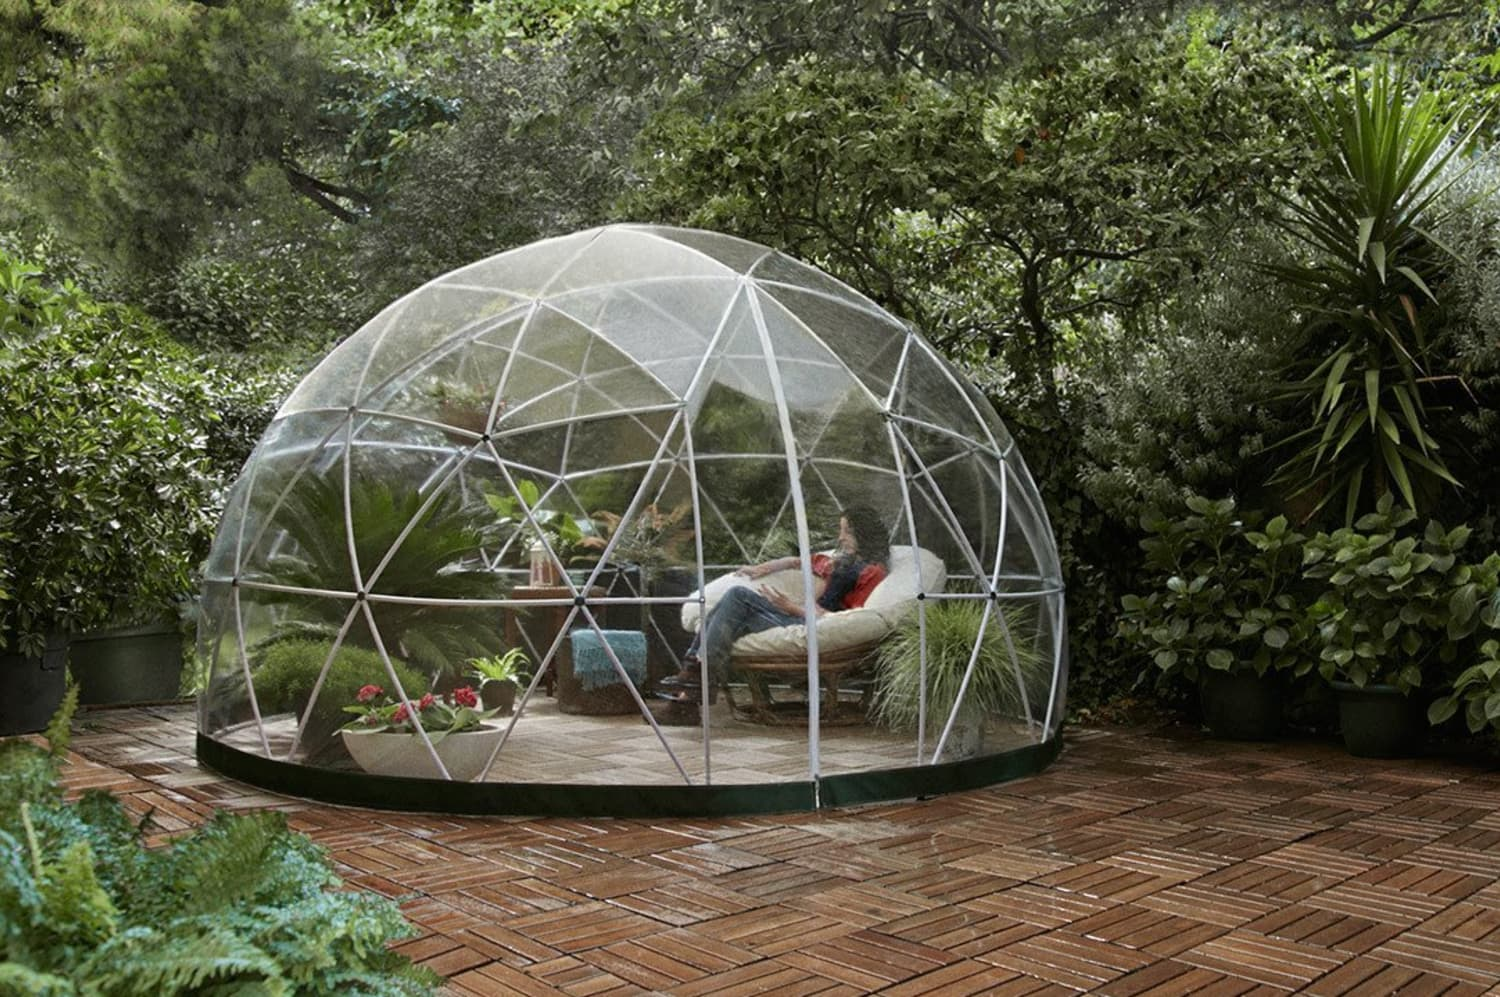 Amazon Is Selling a Garden Dome That Will Transform Your Backyard into a Private Oasis